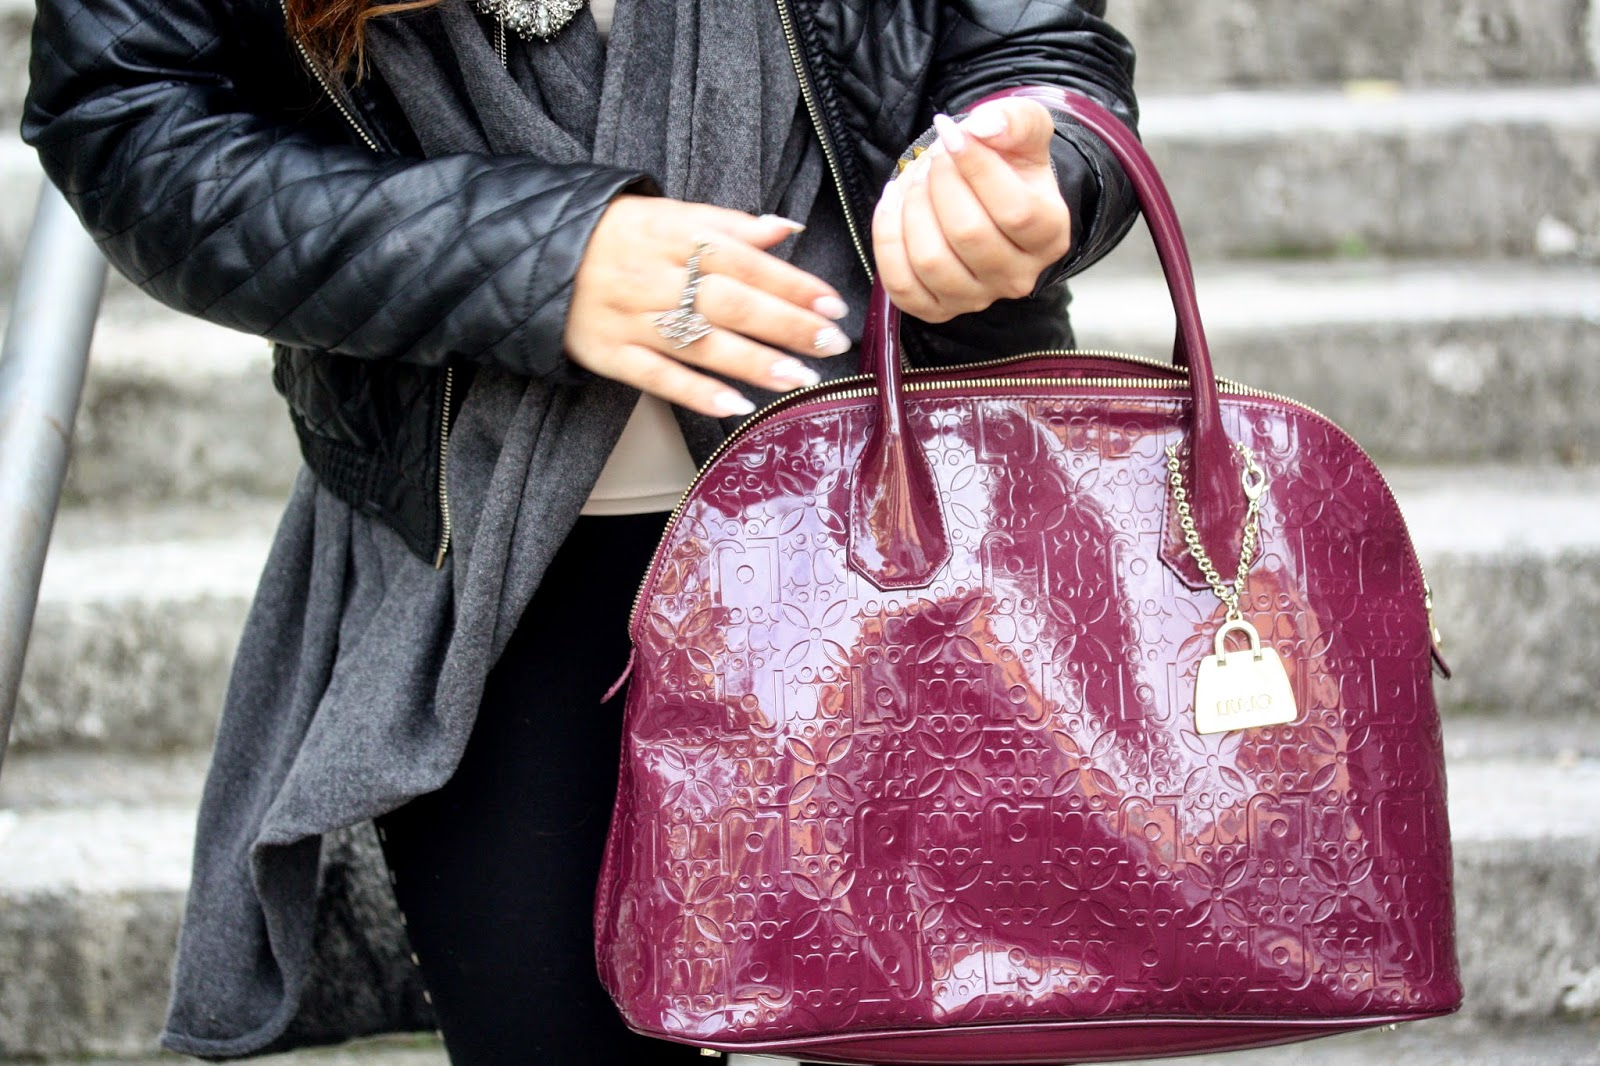 Mood casual con biker boots, colori scuri e borsa bordeaux!